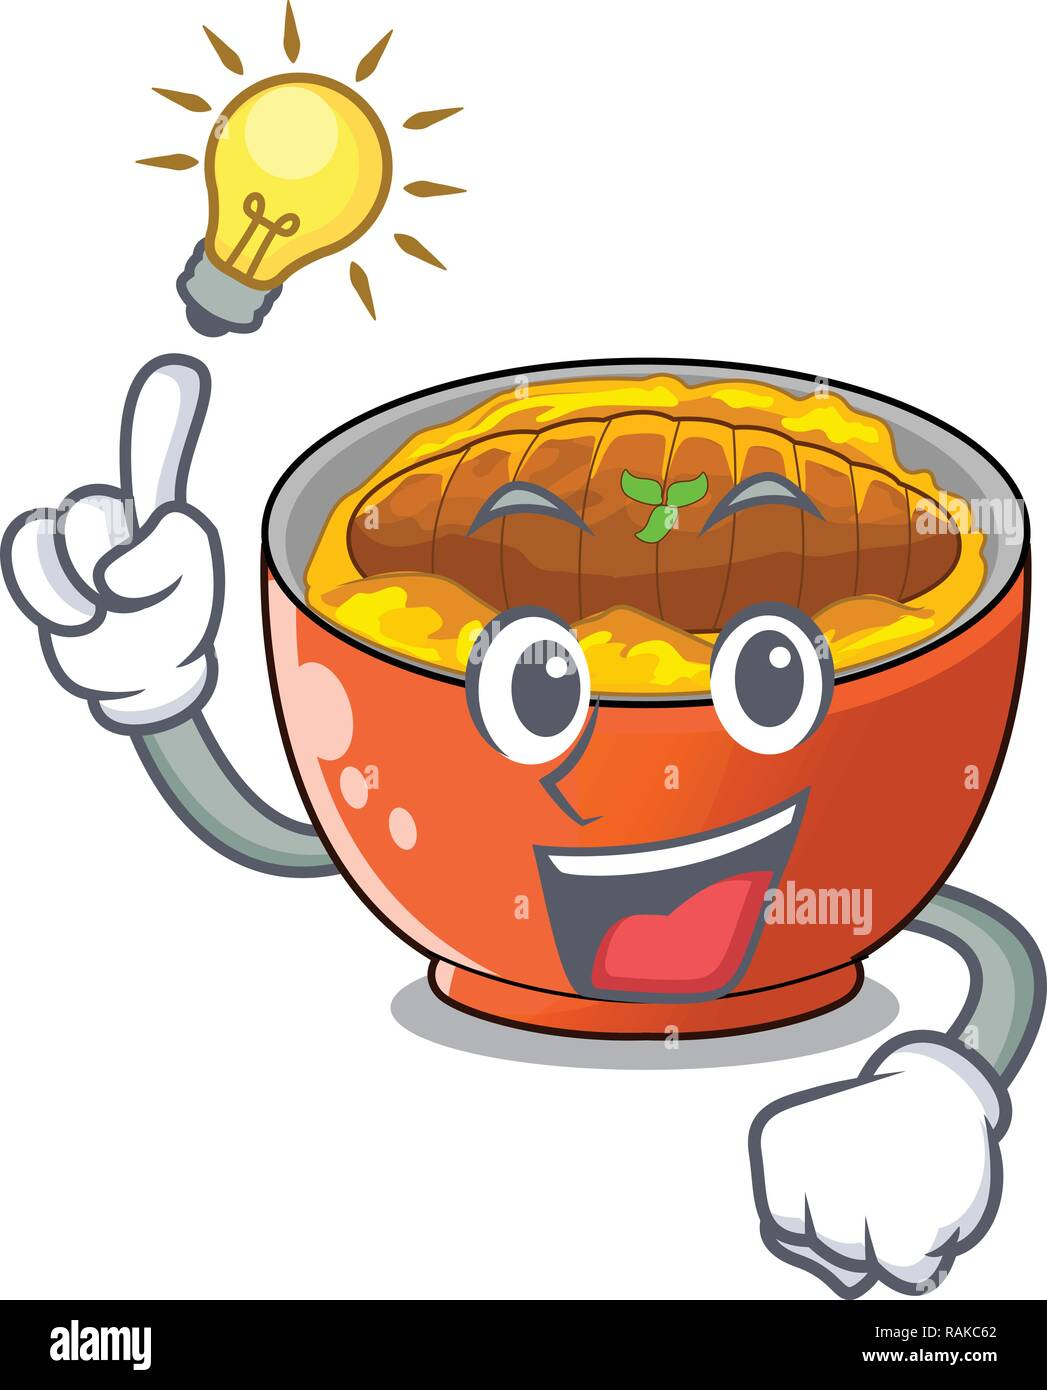 Have an idea katsudon is served on mascot plate - Stock Vector